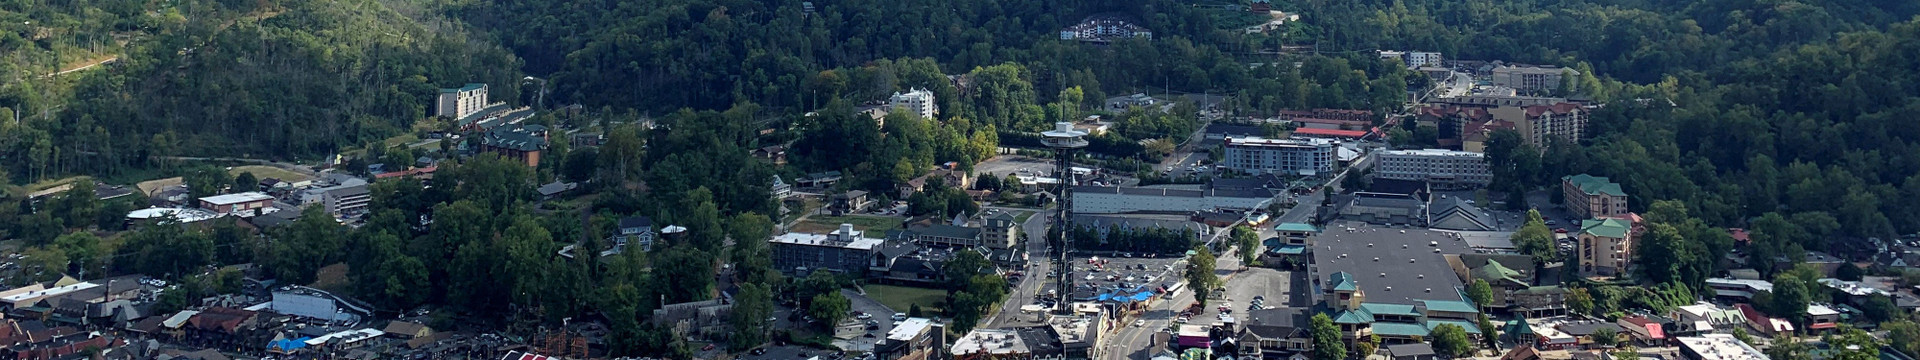 View of Downtown Gatlinburg - River Terrace